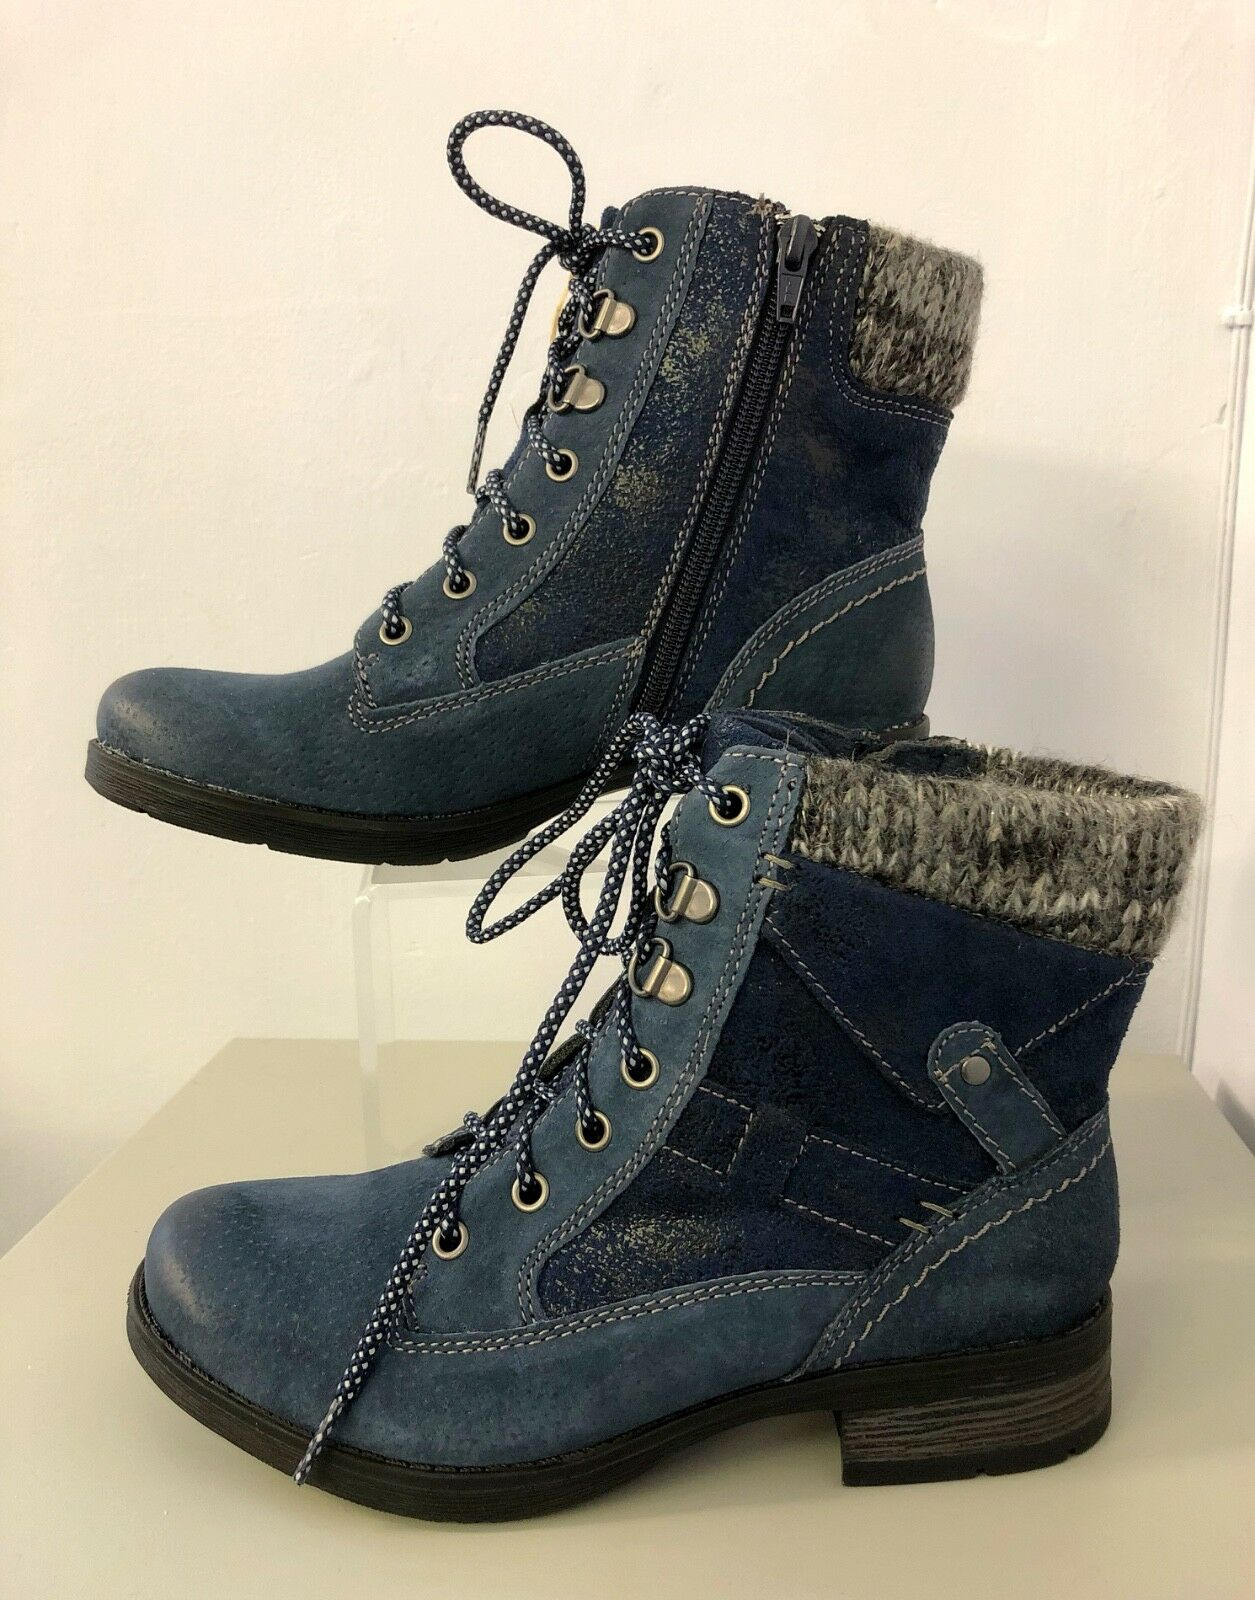 EARTH SPIRIT Sandiego San Diego Ankle Boot NAVY bluee 5 Laces Zip